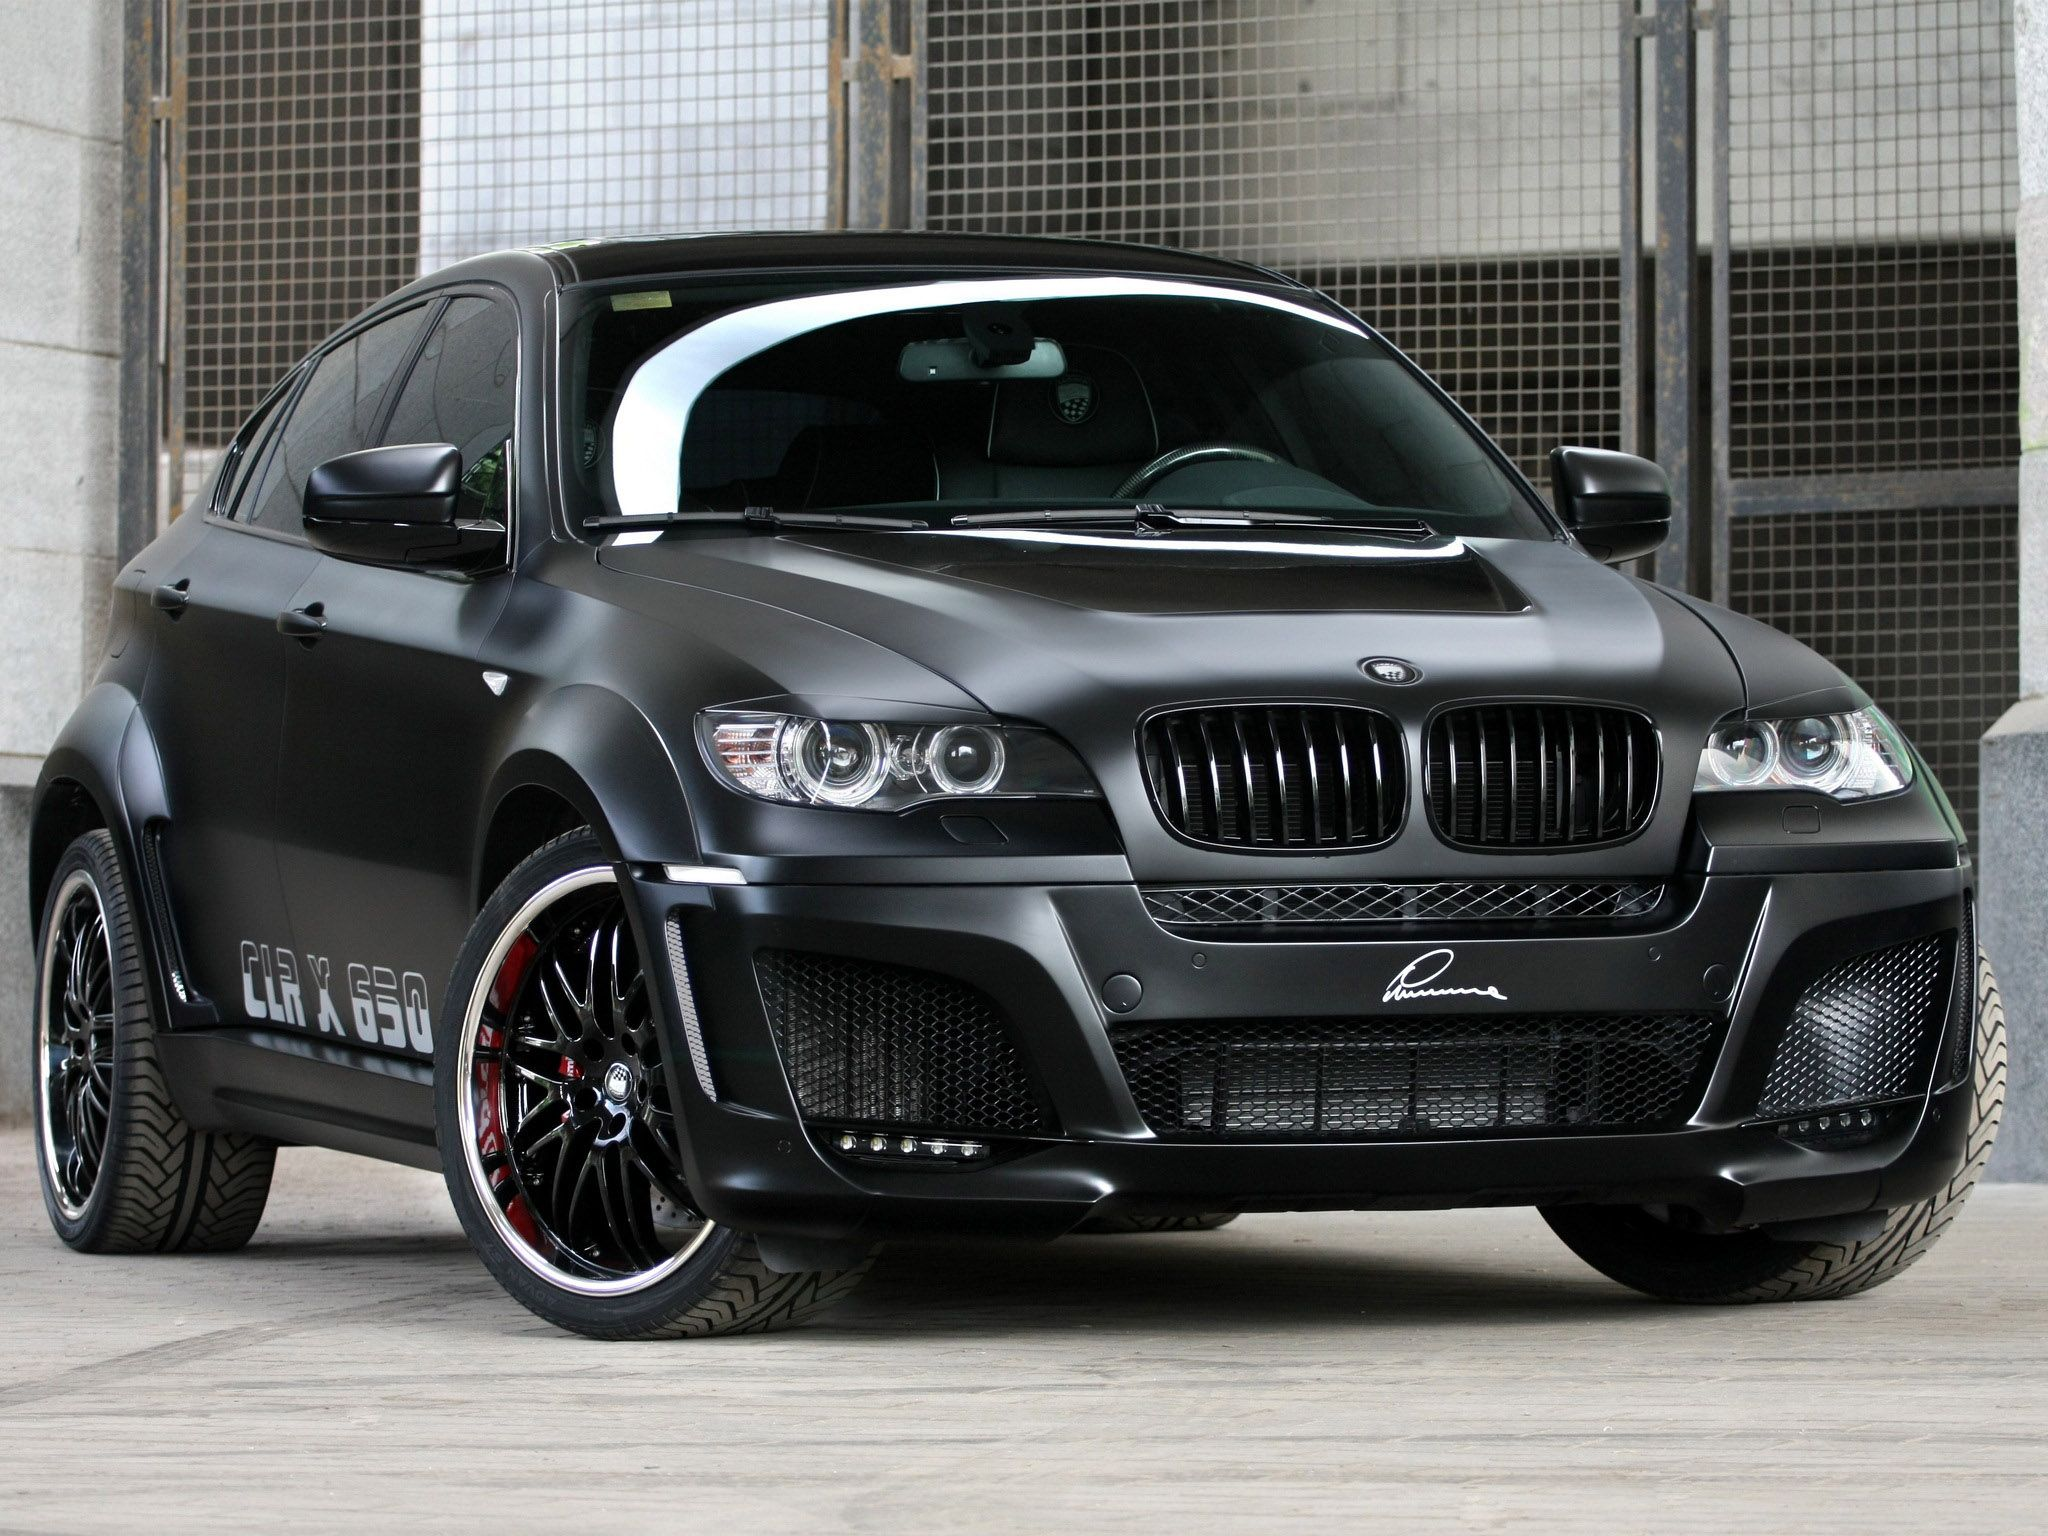 Bmw X6 Many Criticized This Car But I Still Like It